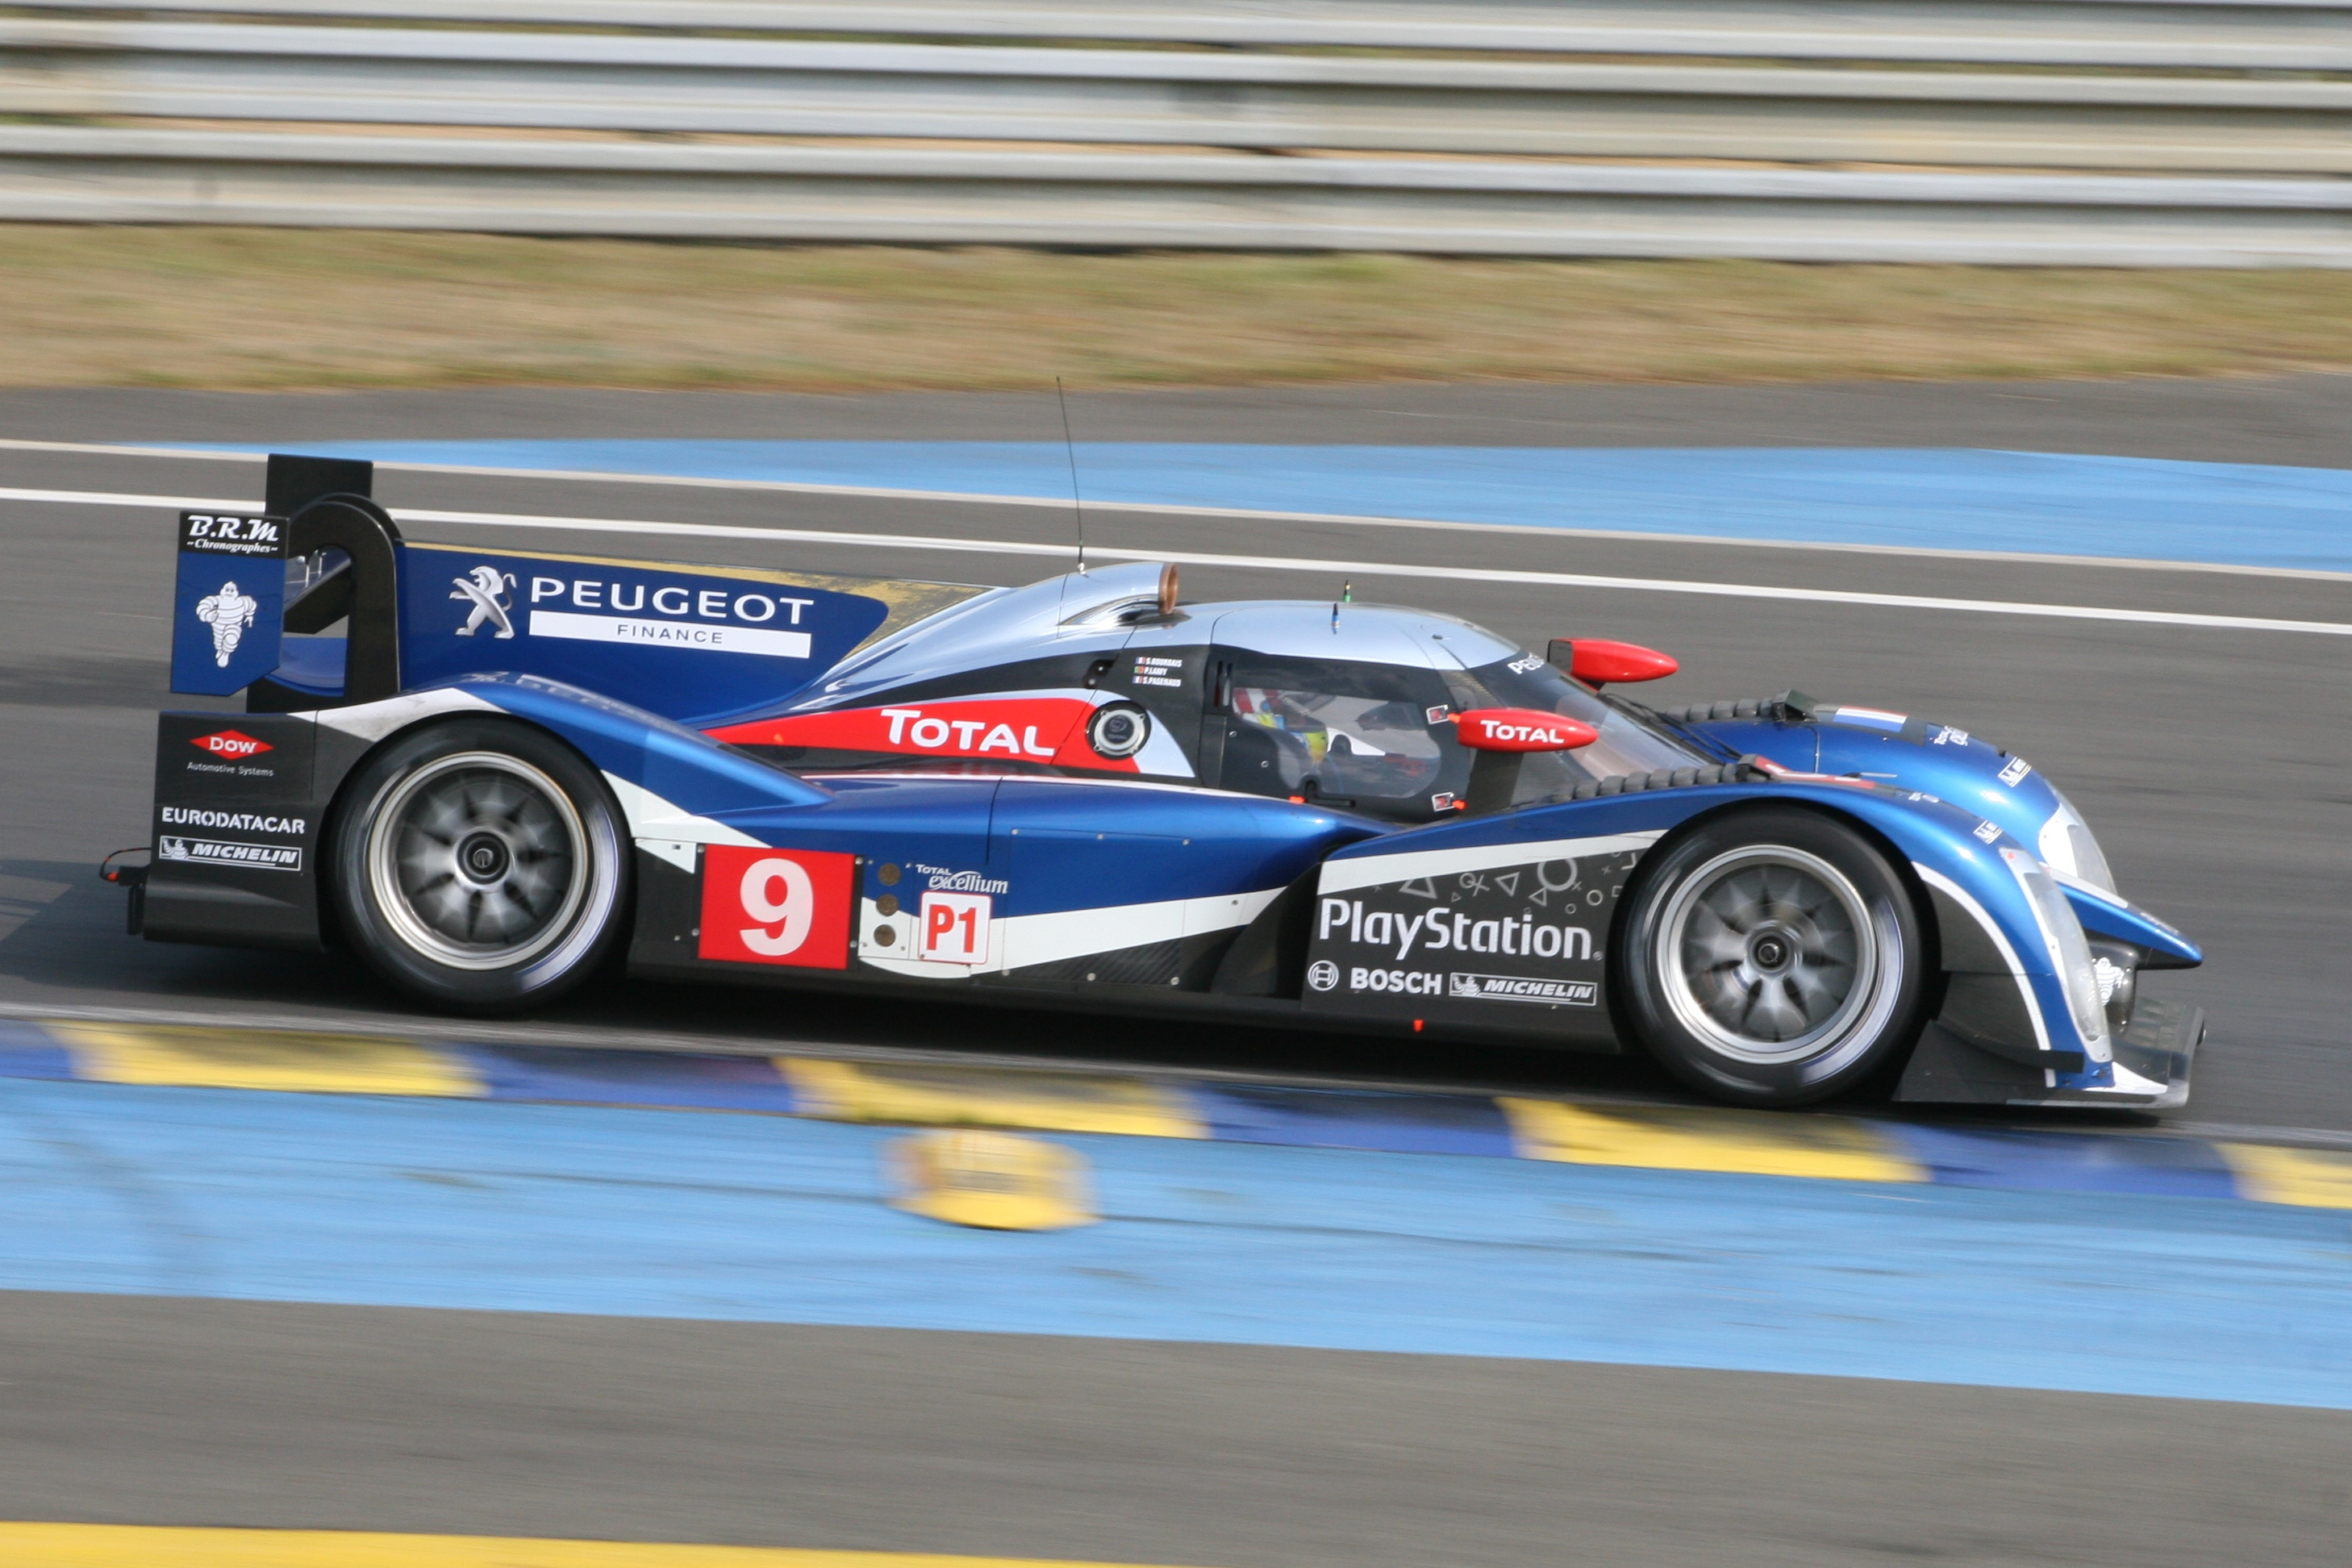 Peugeot 908 - Wikipedia, the free encyclopedia